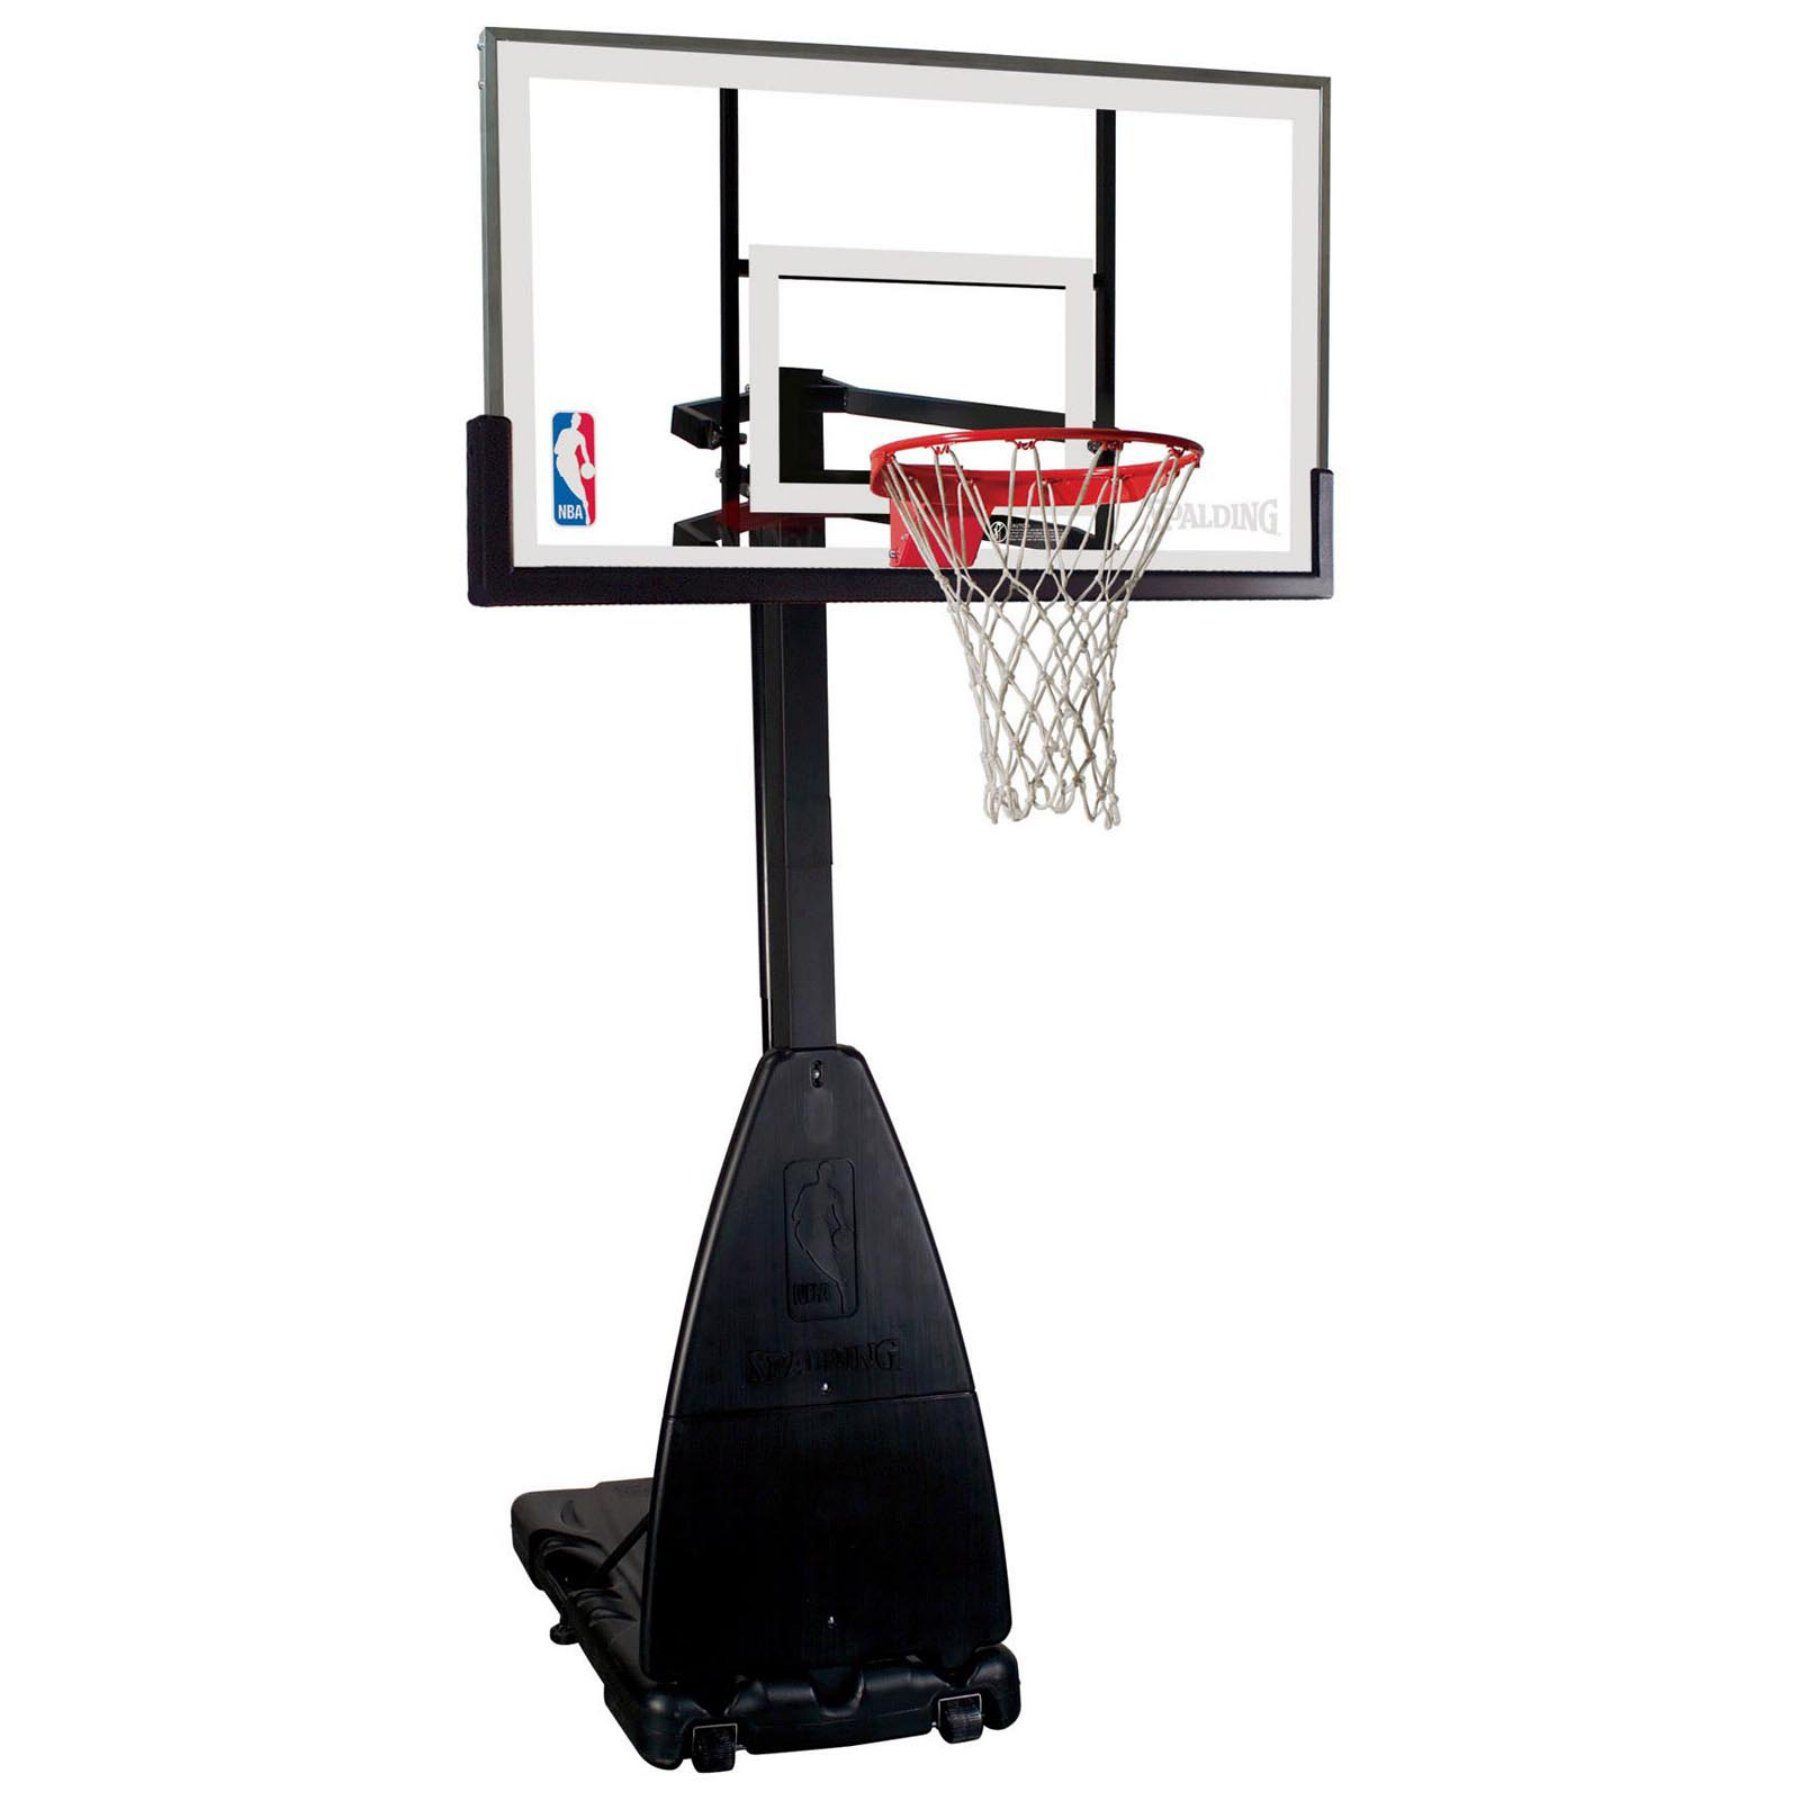 spalding 54 inch glass pro tek portable basketball hoop system